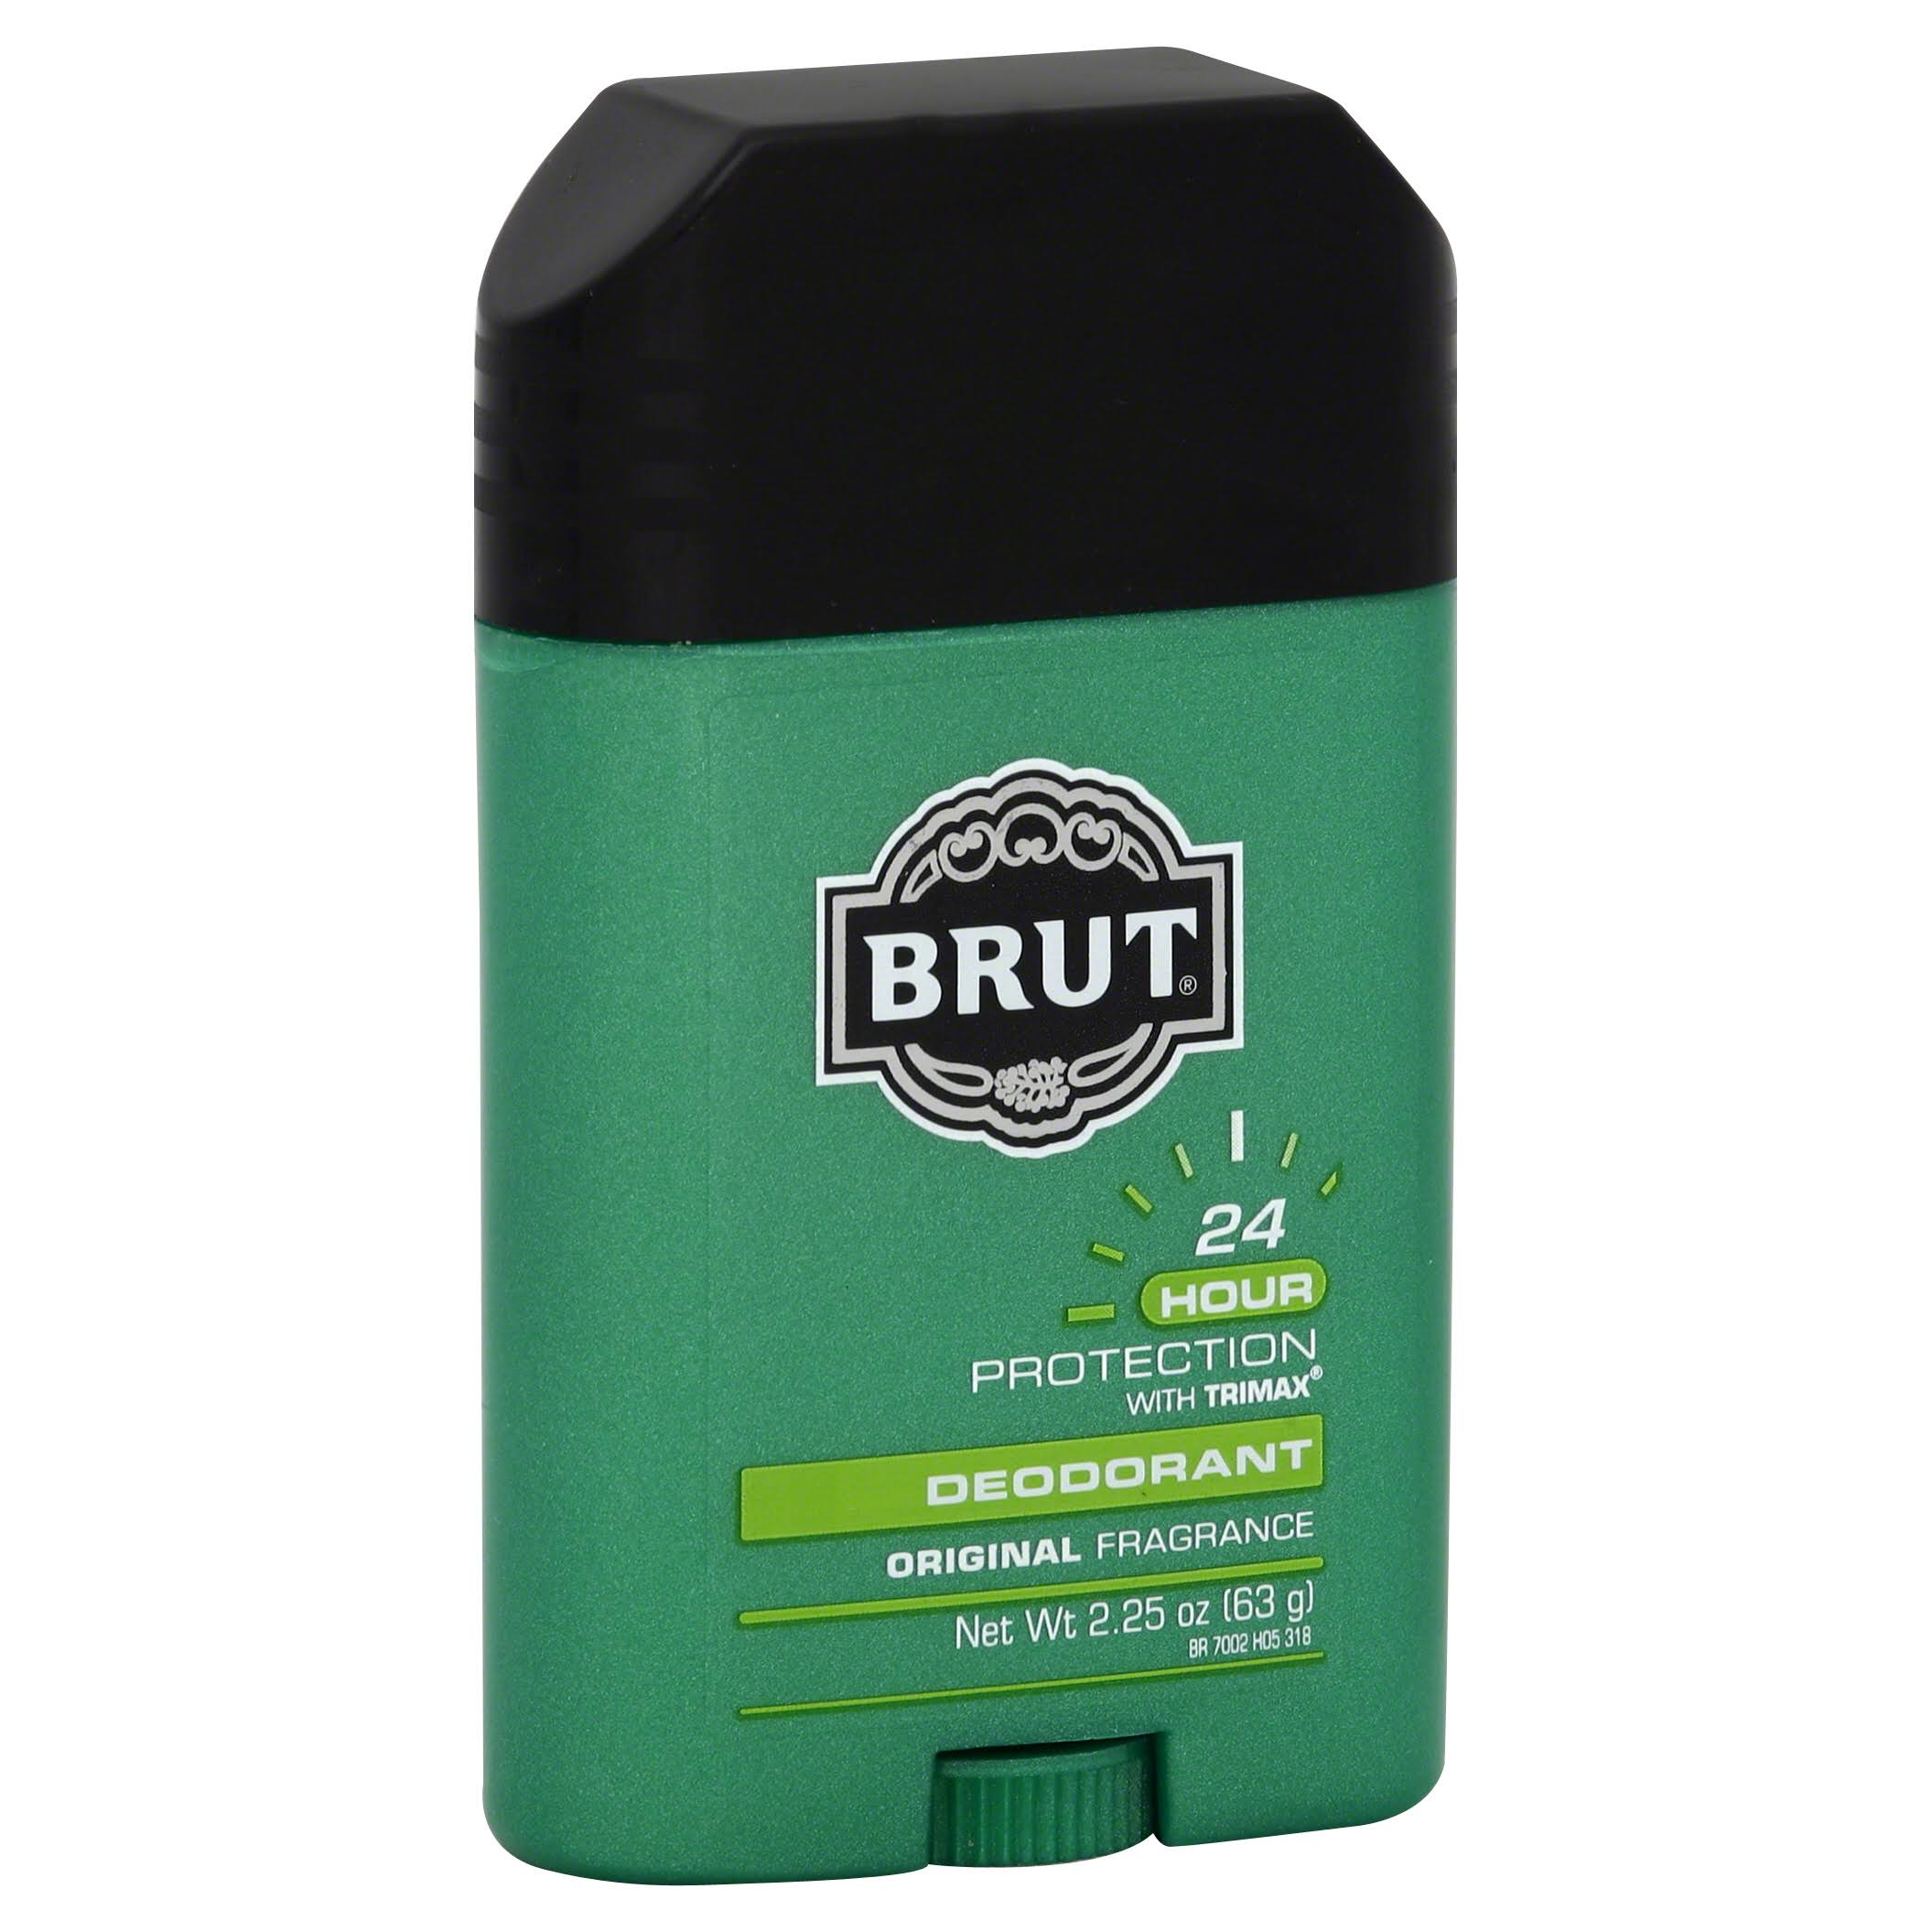 Brut Original Fragrance Deodorant For Men - 2.25oz